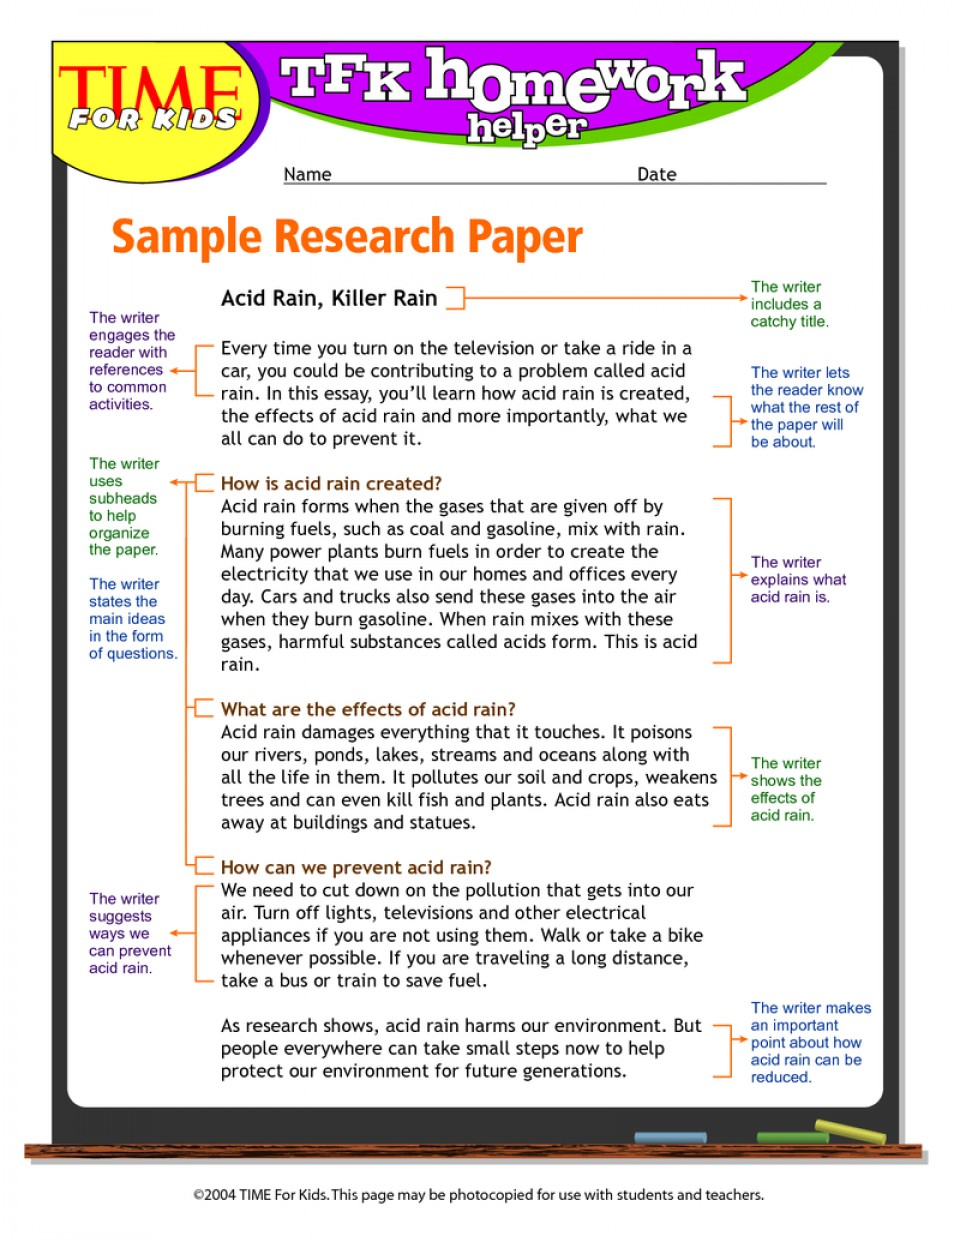 009 How To Do Research Top A Paper I Make Title Page Mla Write Psychology In Apa Format Cover 960